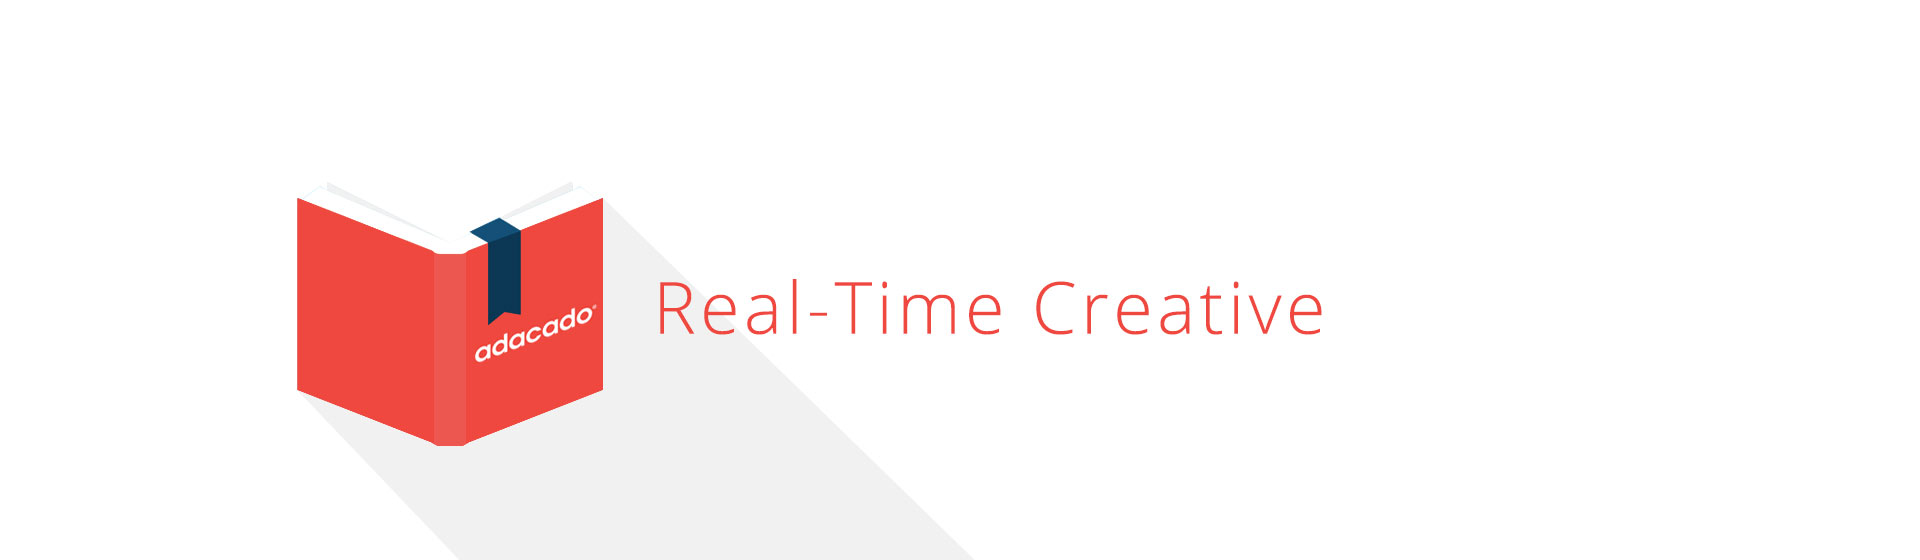 real-time creative